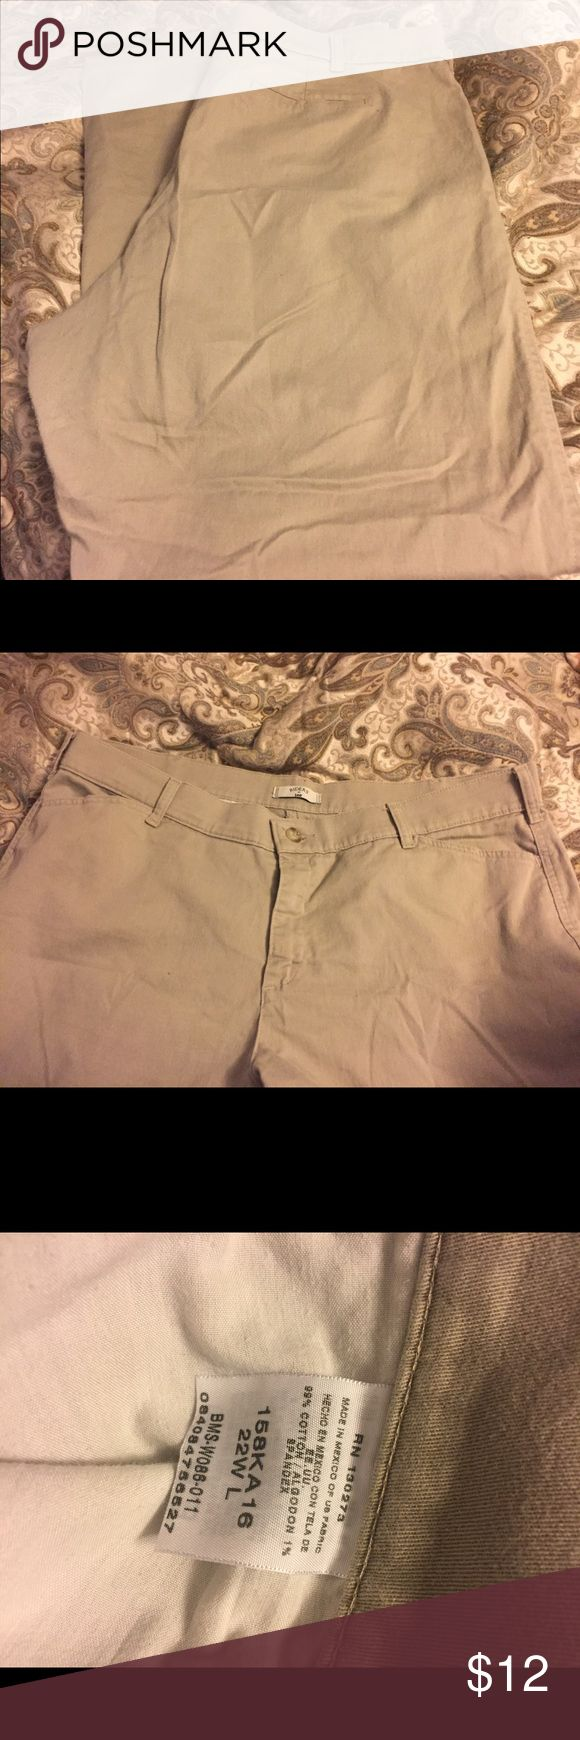 Levi's Women's Plus Size Khakis Size 22W Tall, but fits more like a 20. Does show some sign of wear but still in great condition! Levi's Pants Boot Cut & Flare